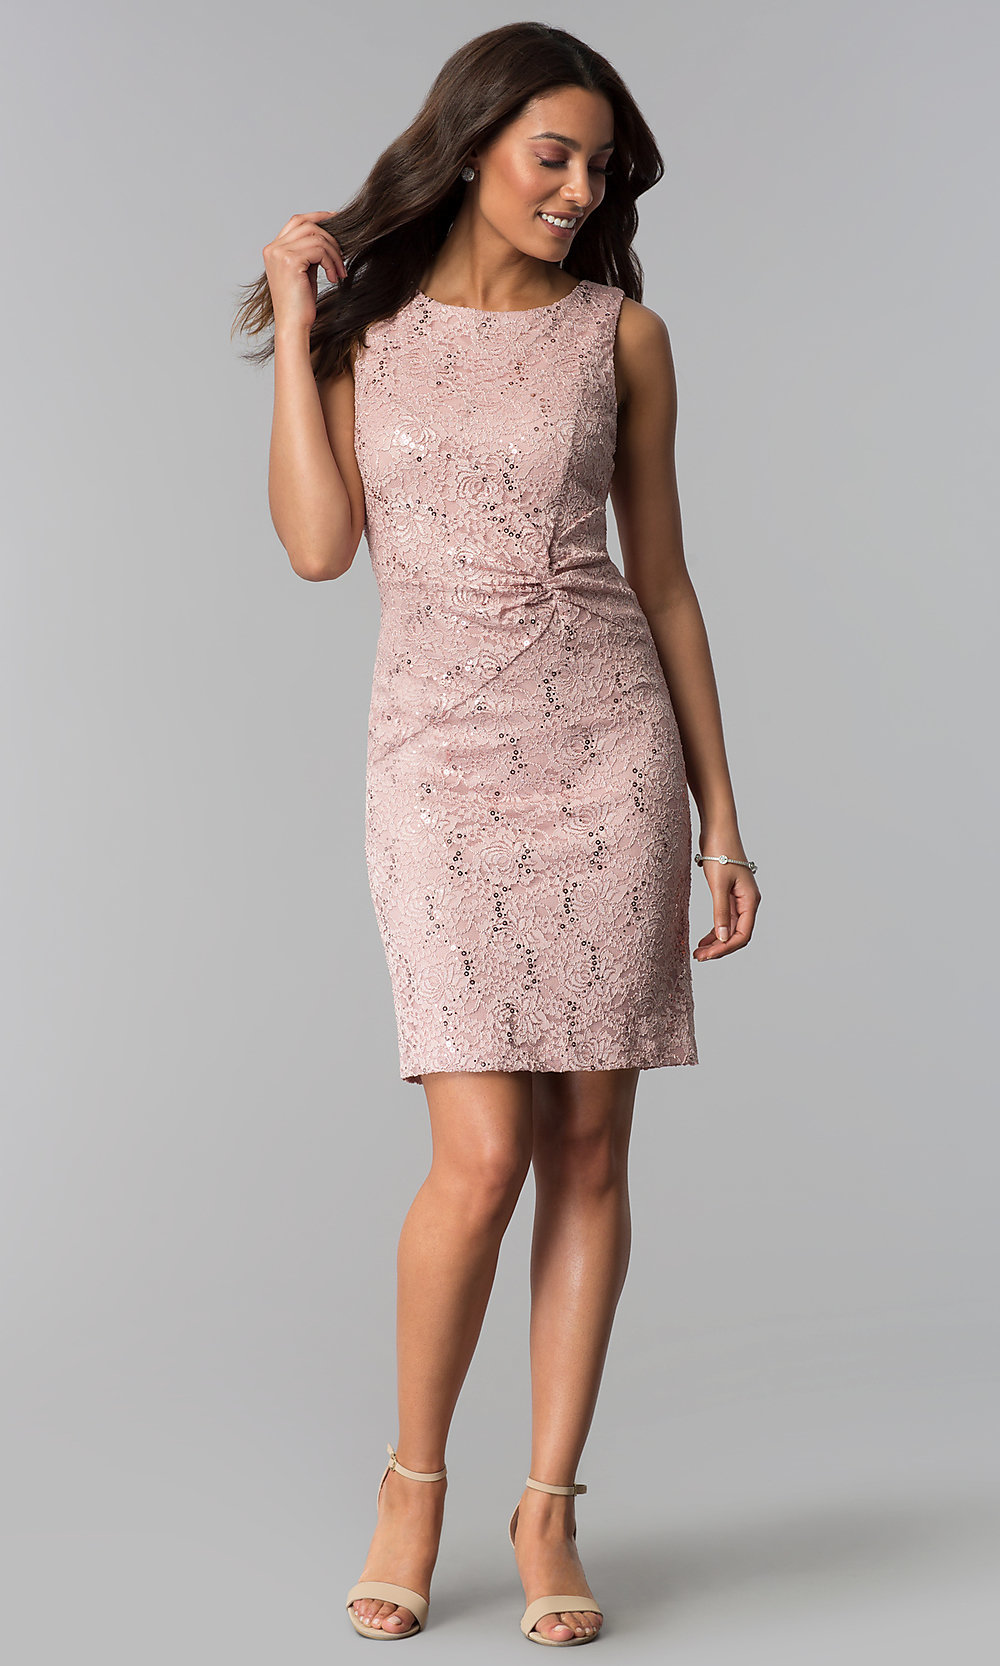 blush colored wedding guest dresses